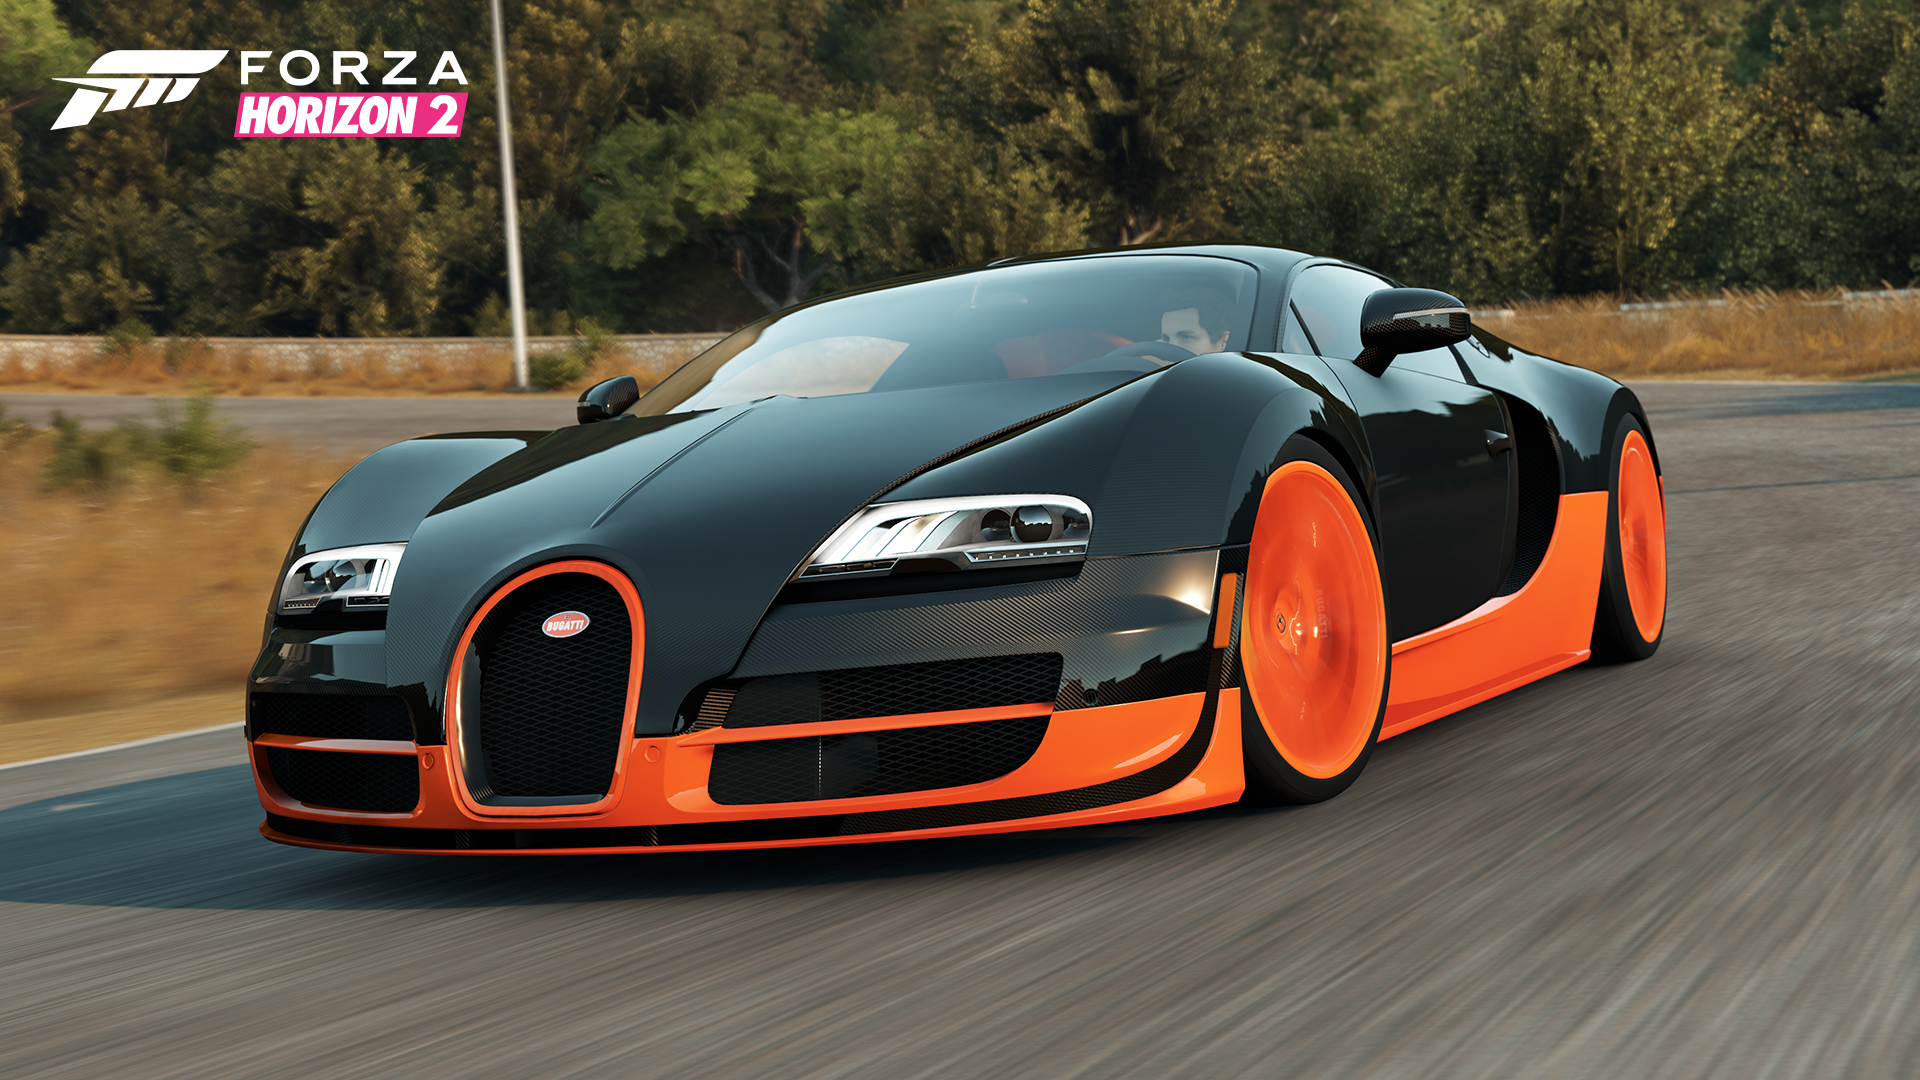 bugatti veyron xbox bugatti free engine image for user. Black Bedroom Furniture Sets. Home Design Ideas